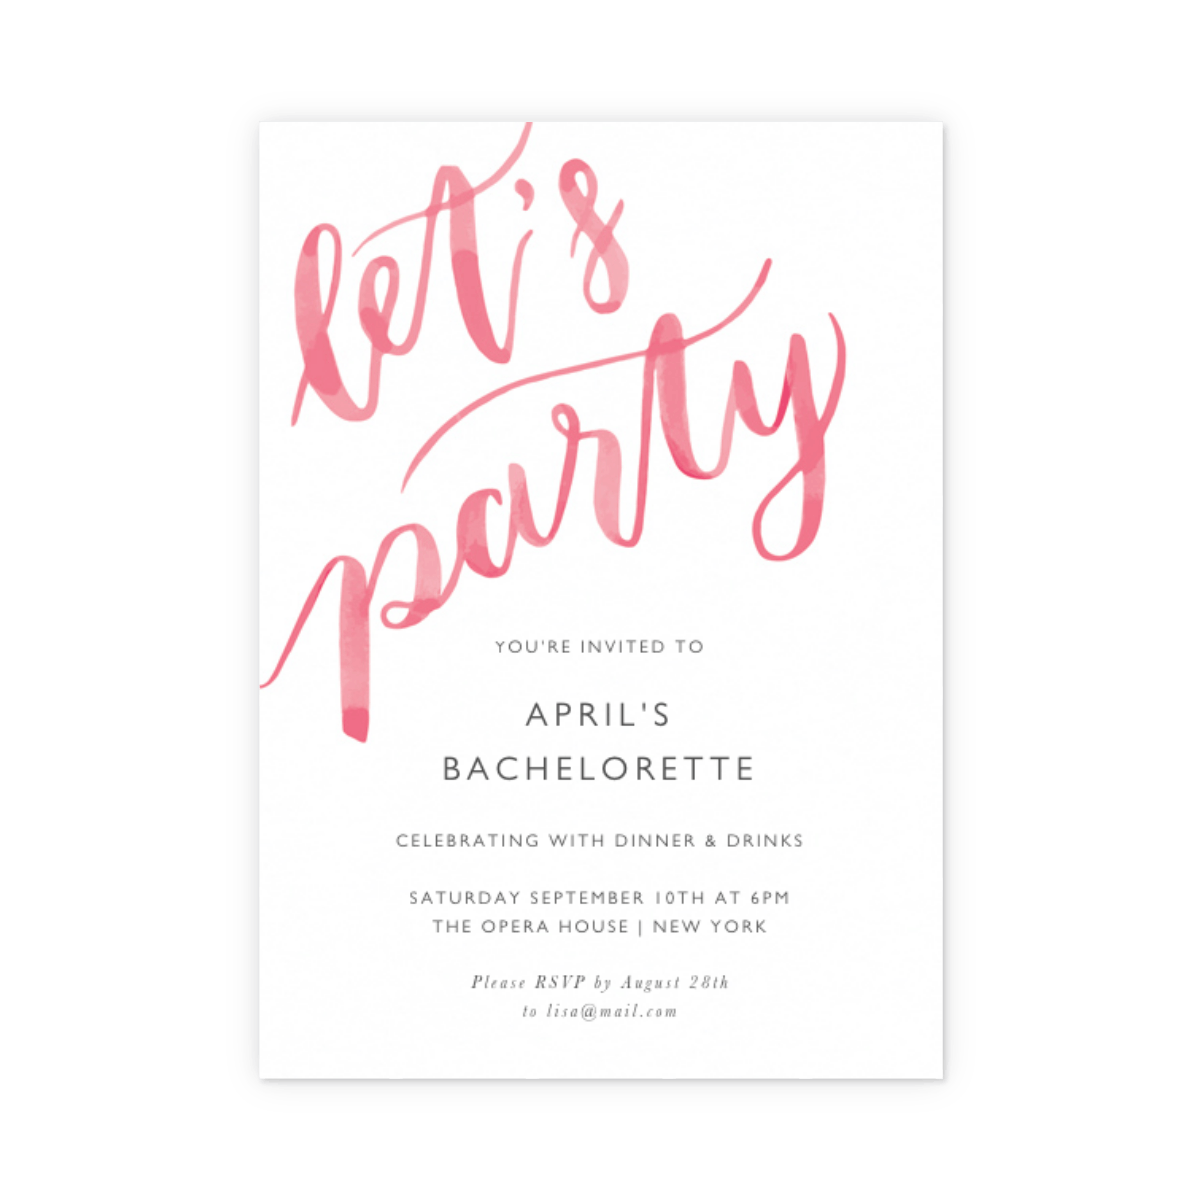 Https%3a%2f%2fwww.papier.com%2fproduct image%2f83816%2f4%2flet s party brush lettering 20259 front 1565550404.png?ixlib=rb 1.1